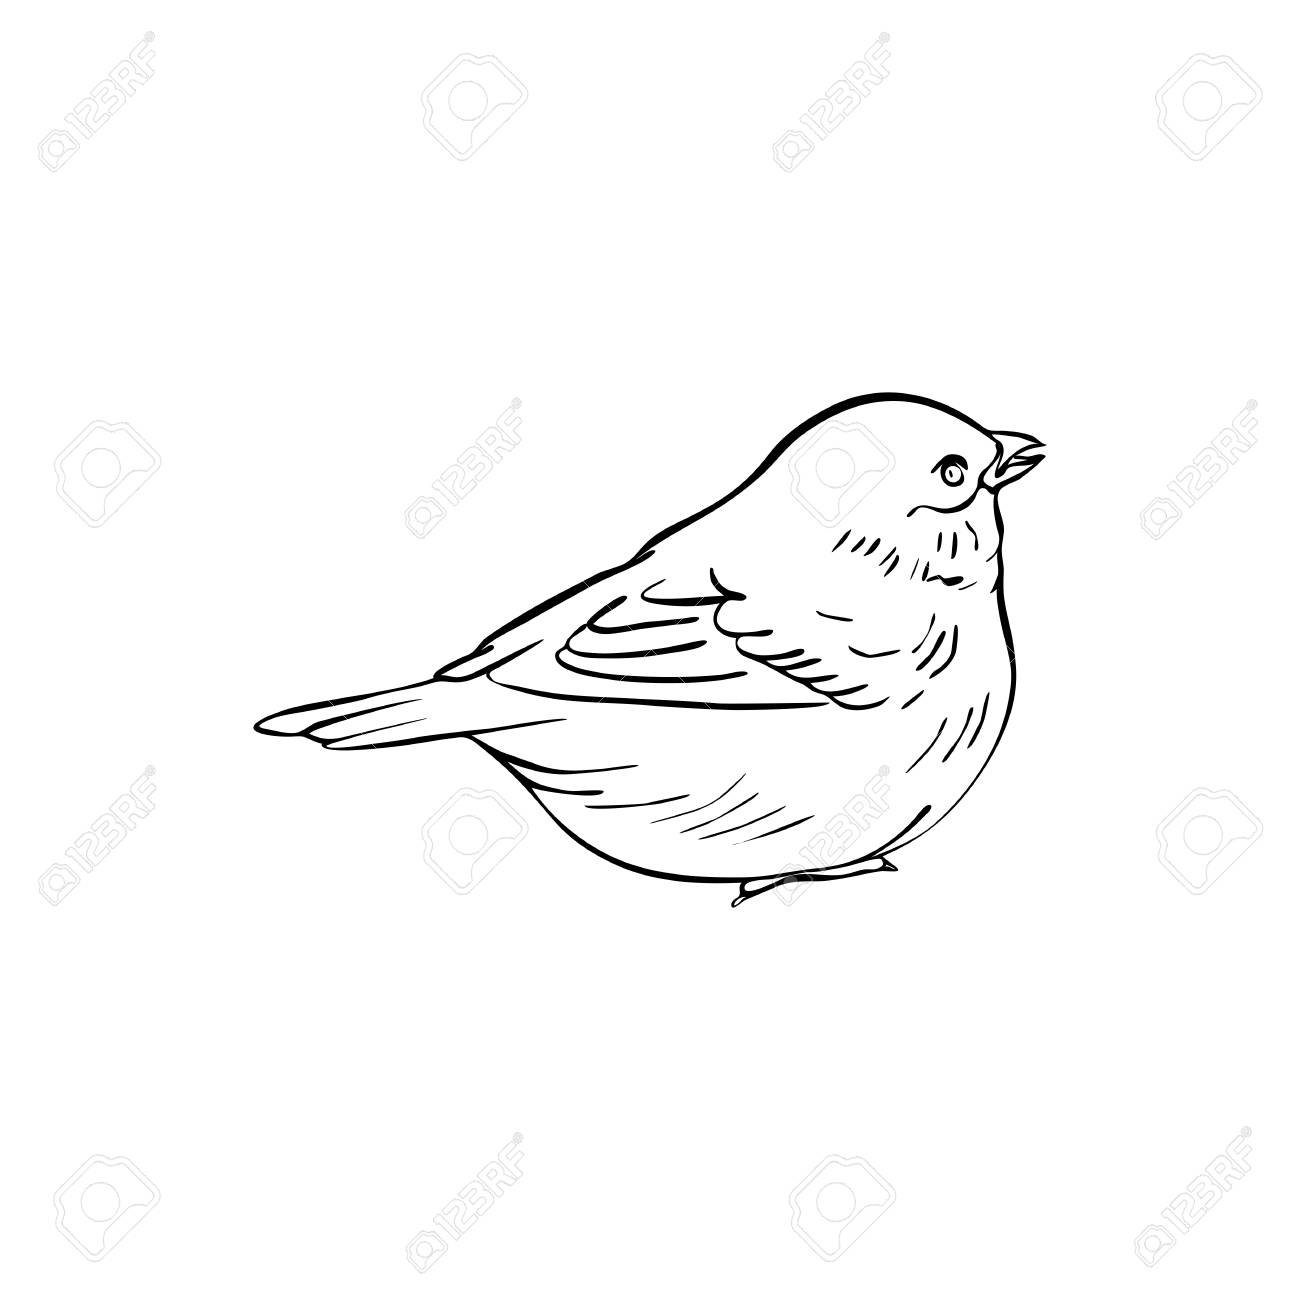 Vector Line Drawing Bird Sitting At Tree Branch Sketch Of Sparrow Royalty Free Cliparts Vectors And Stock Illustration Image 124674926